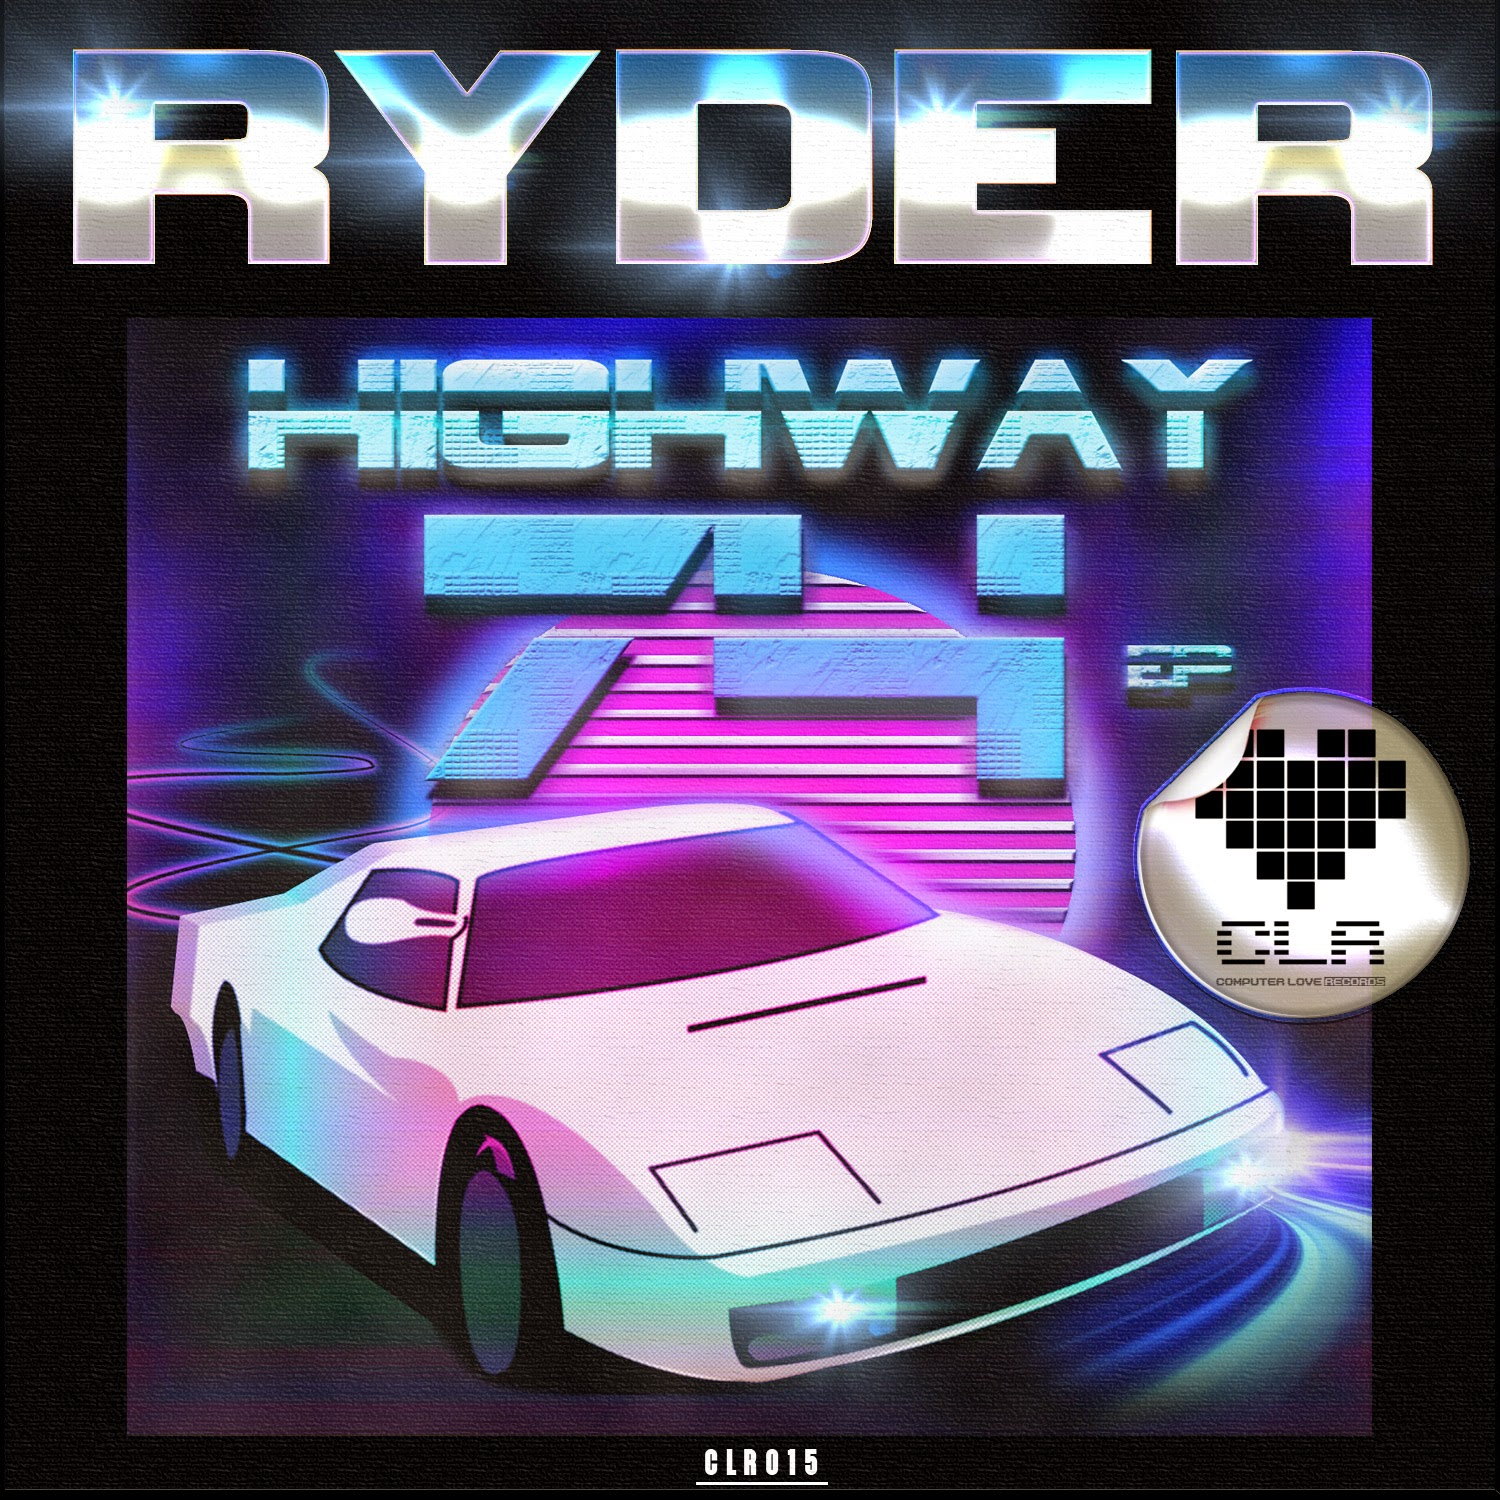 http://computerloverecords.blogspot.com/p/ryder-highway-74-ep.html